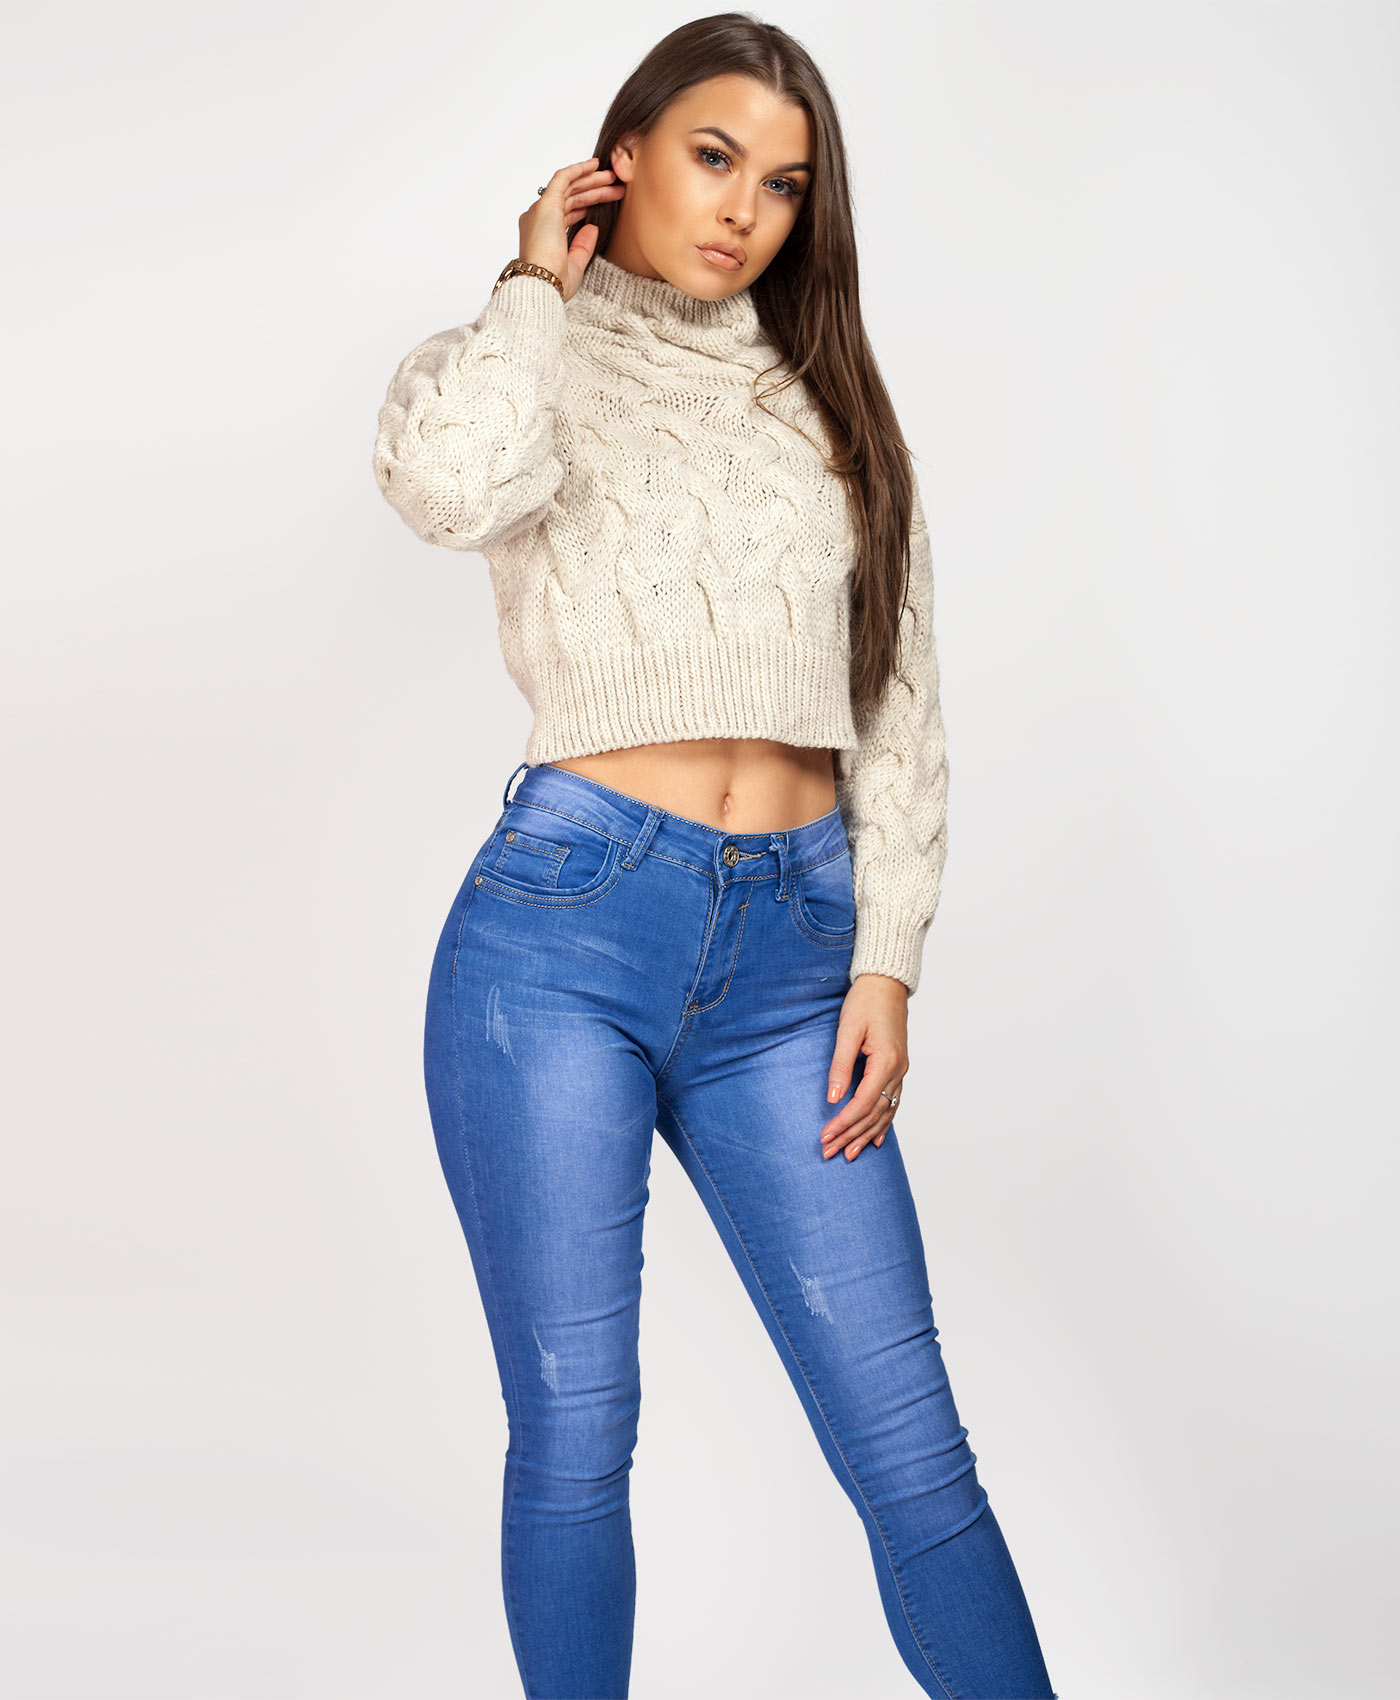 Womens-Ladies-Cable-Knitted-High-Neck-Cropped-Top-Pullover-Sweater-Chunky-Jumper thumbnail 18